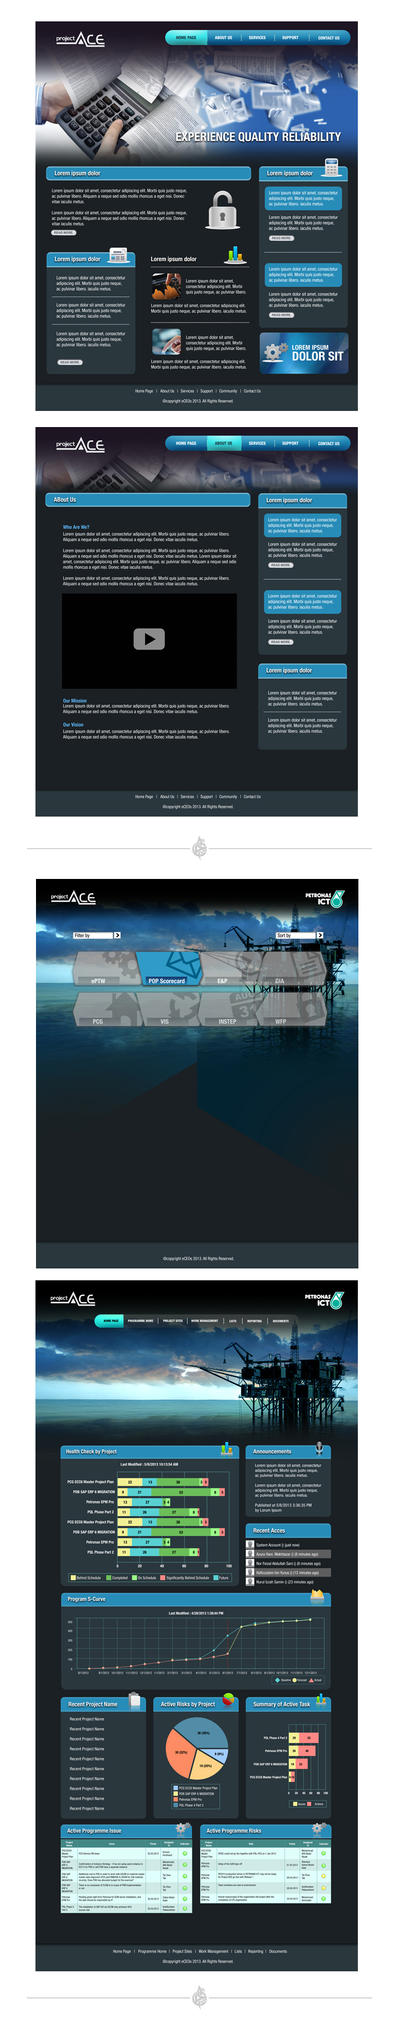 Project Web Design 1 by AimanMD